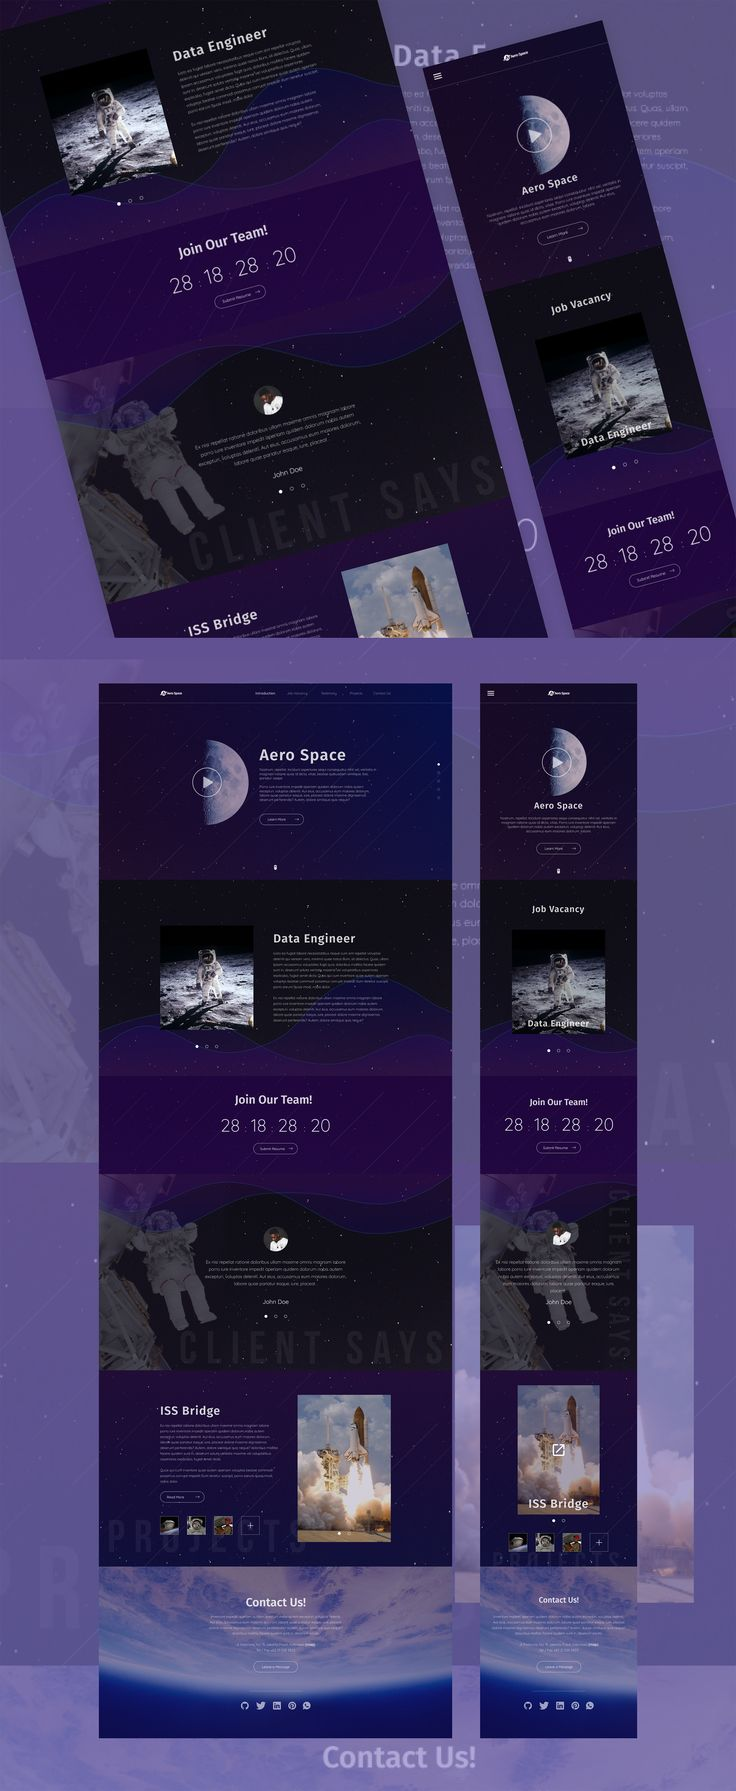 Landing page design insipiration with theme of space & astronaut, this design concept is company website with focus to share job vacancy